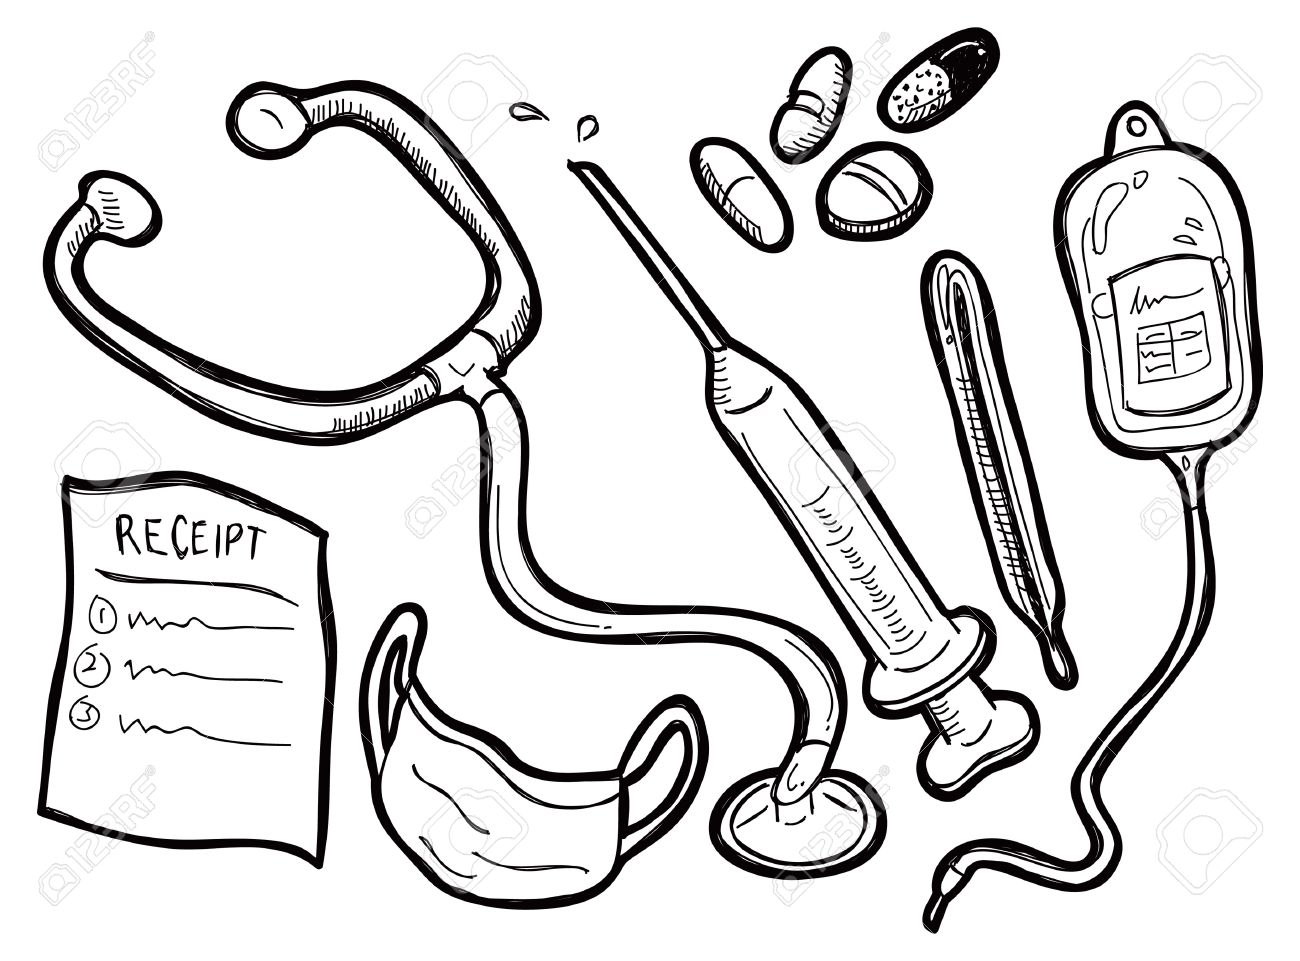 Doctor Tools Coloring Pages - Get Coloring Pages | 961x1300